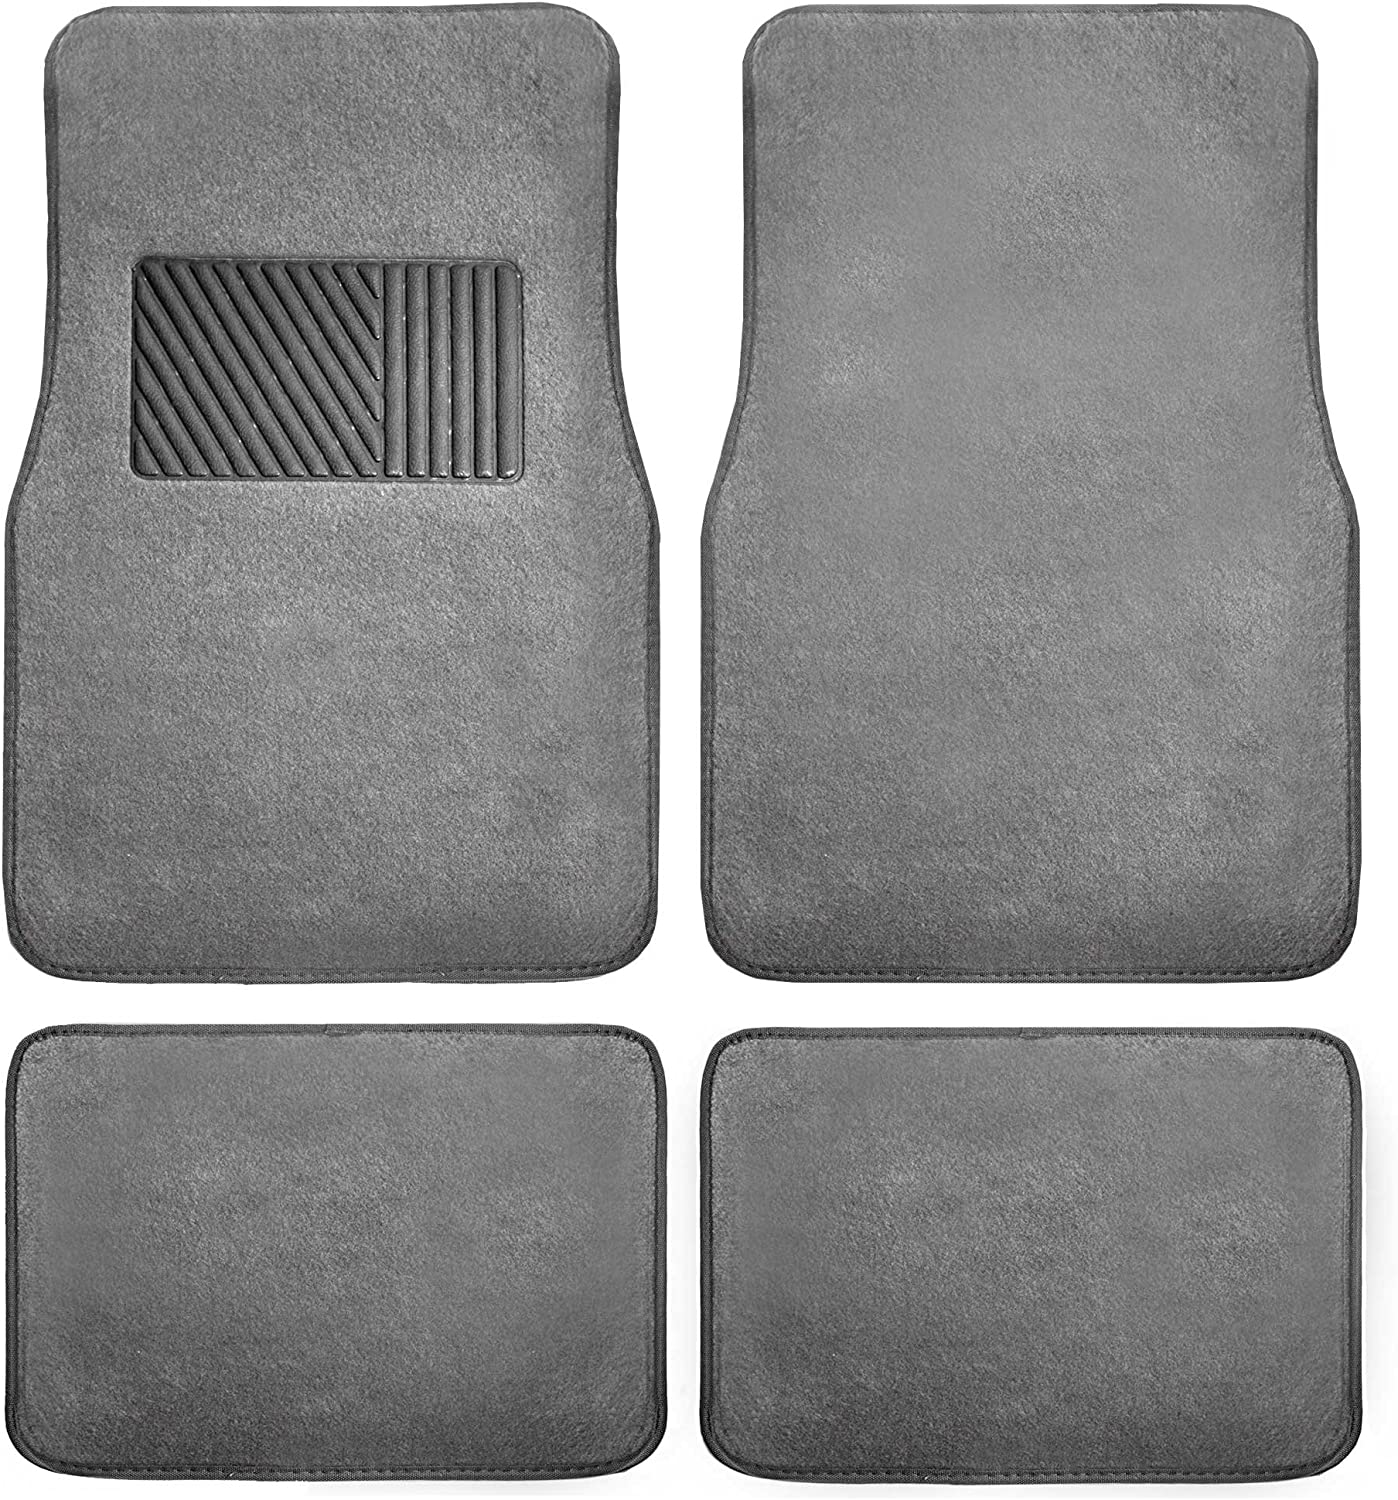 FH Group F14403GRAY Gray Carpet Floor Mat with Heel Pad 4- Piece Set for Cars, Trucks, Vans, and SUVs (Deluxe)